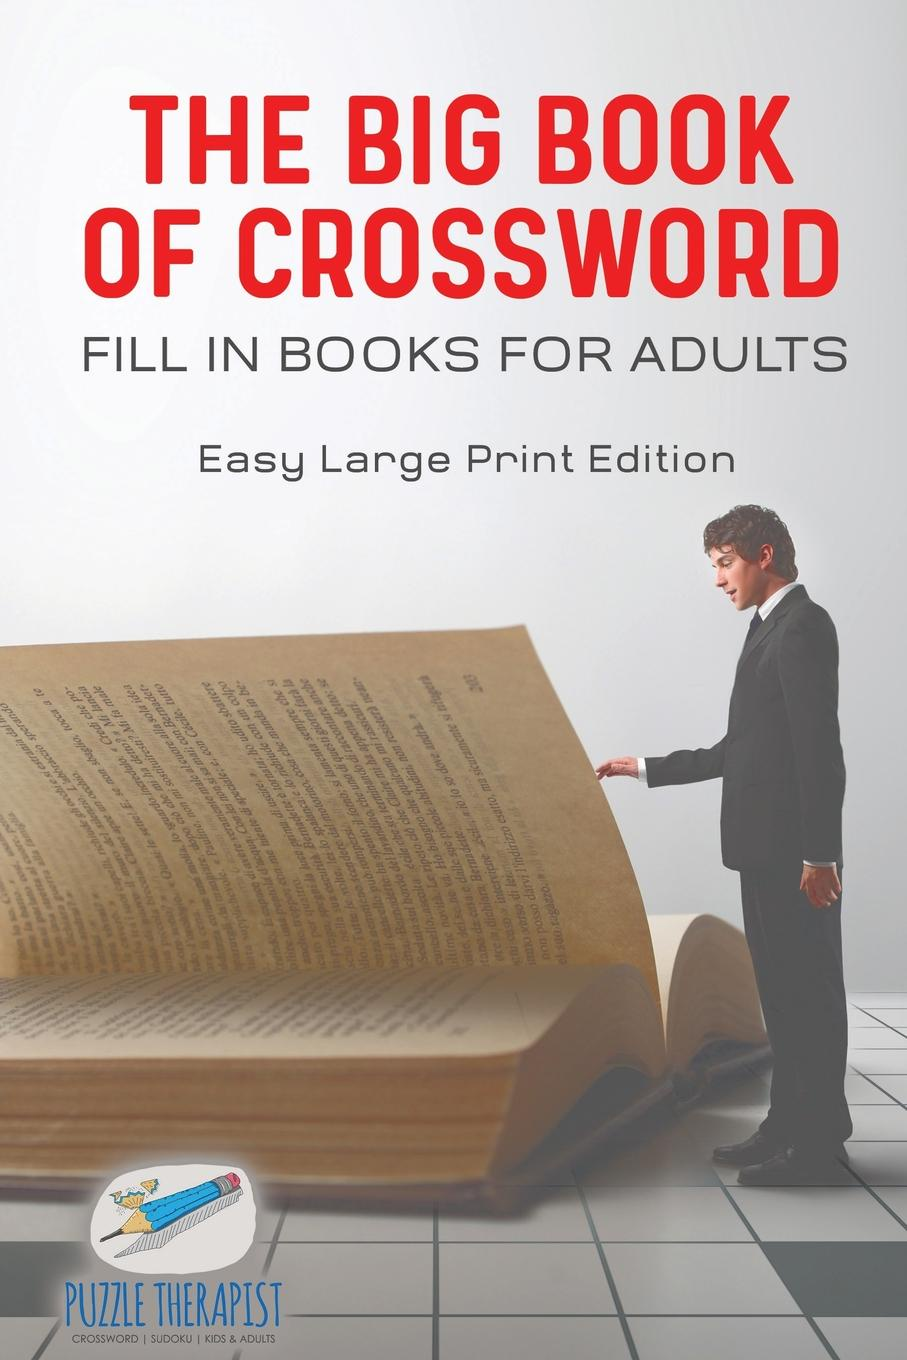 Puzzle Therapist The Big Book of Crossword . Fill in Books for Adults . Easy Large Print Edition william brooks t playing bigger than you are how to sell big accounts even if you re david in a world of goliaths